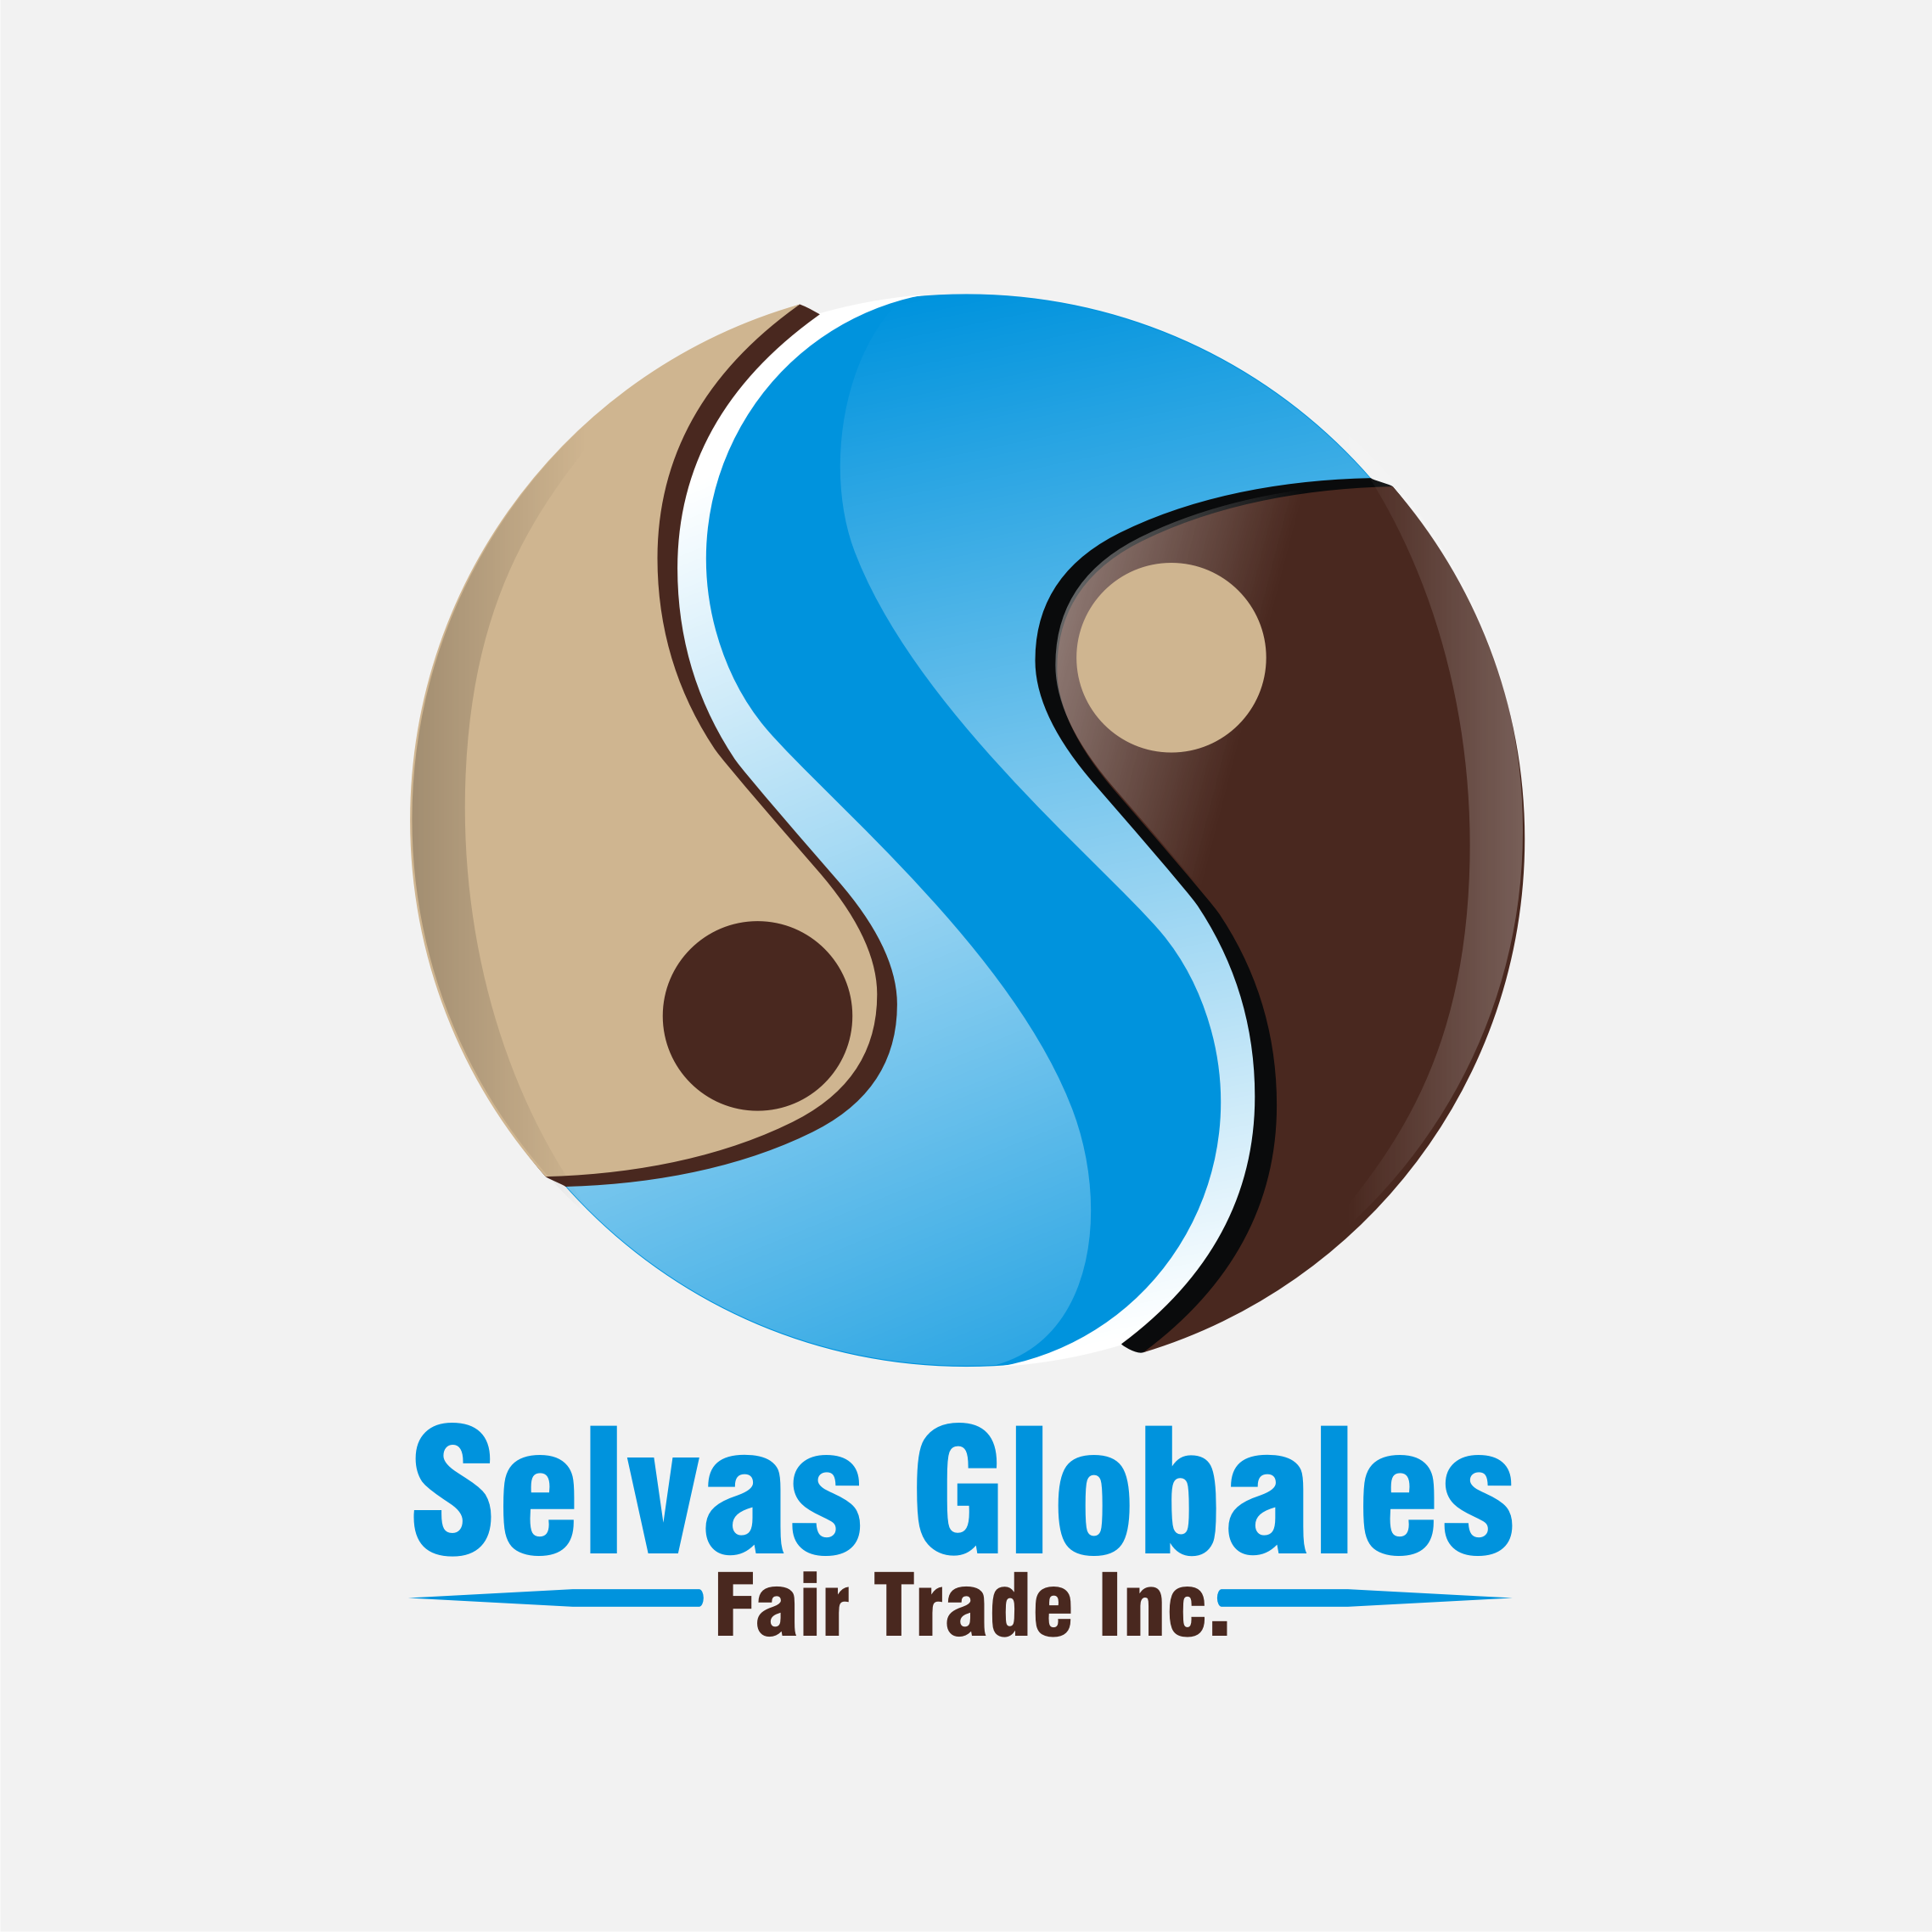 Logo Design by Private User - Entry No. 49 in the Logo Design Contest Captivating Logo Design for Selvas Globales Fair Trade Inc..